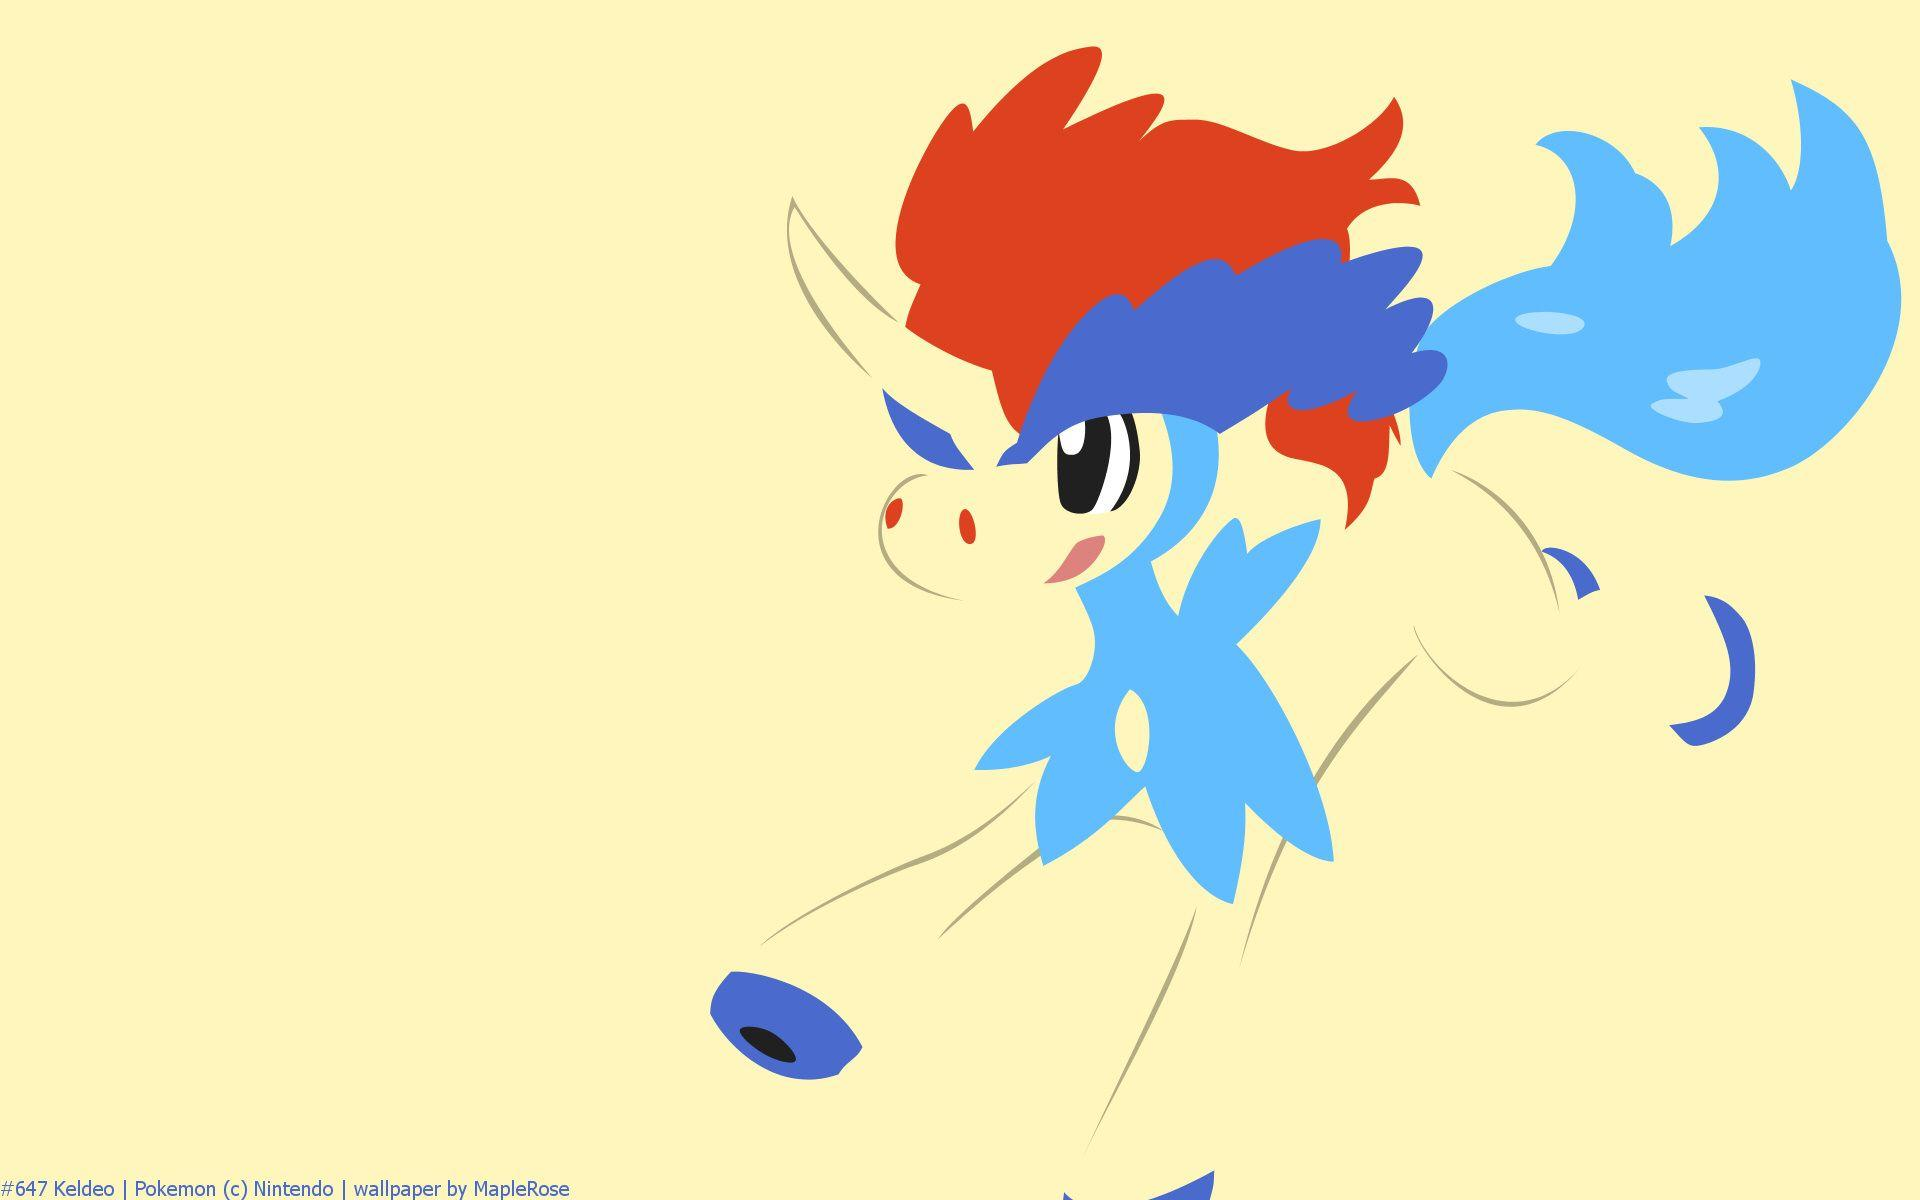 Keldeo Pokemon HD Wallpapers - Free HD wallpapers, Iphone, Samsung ...